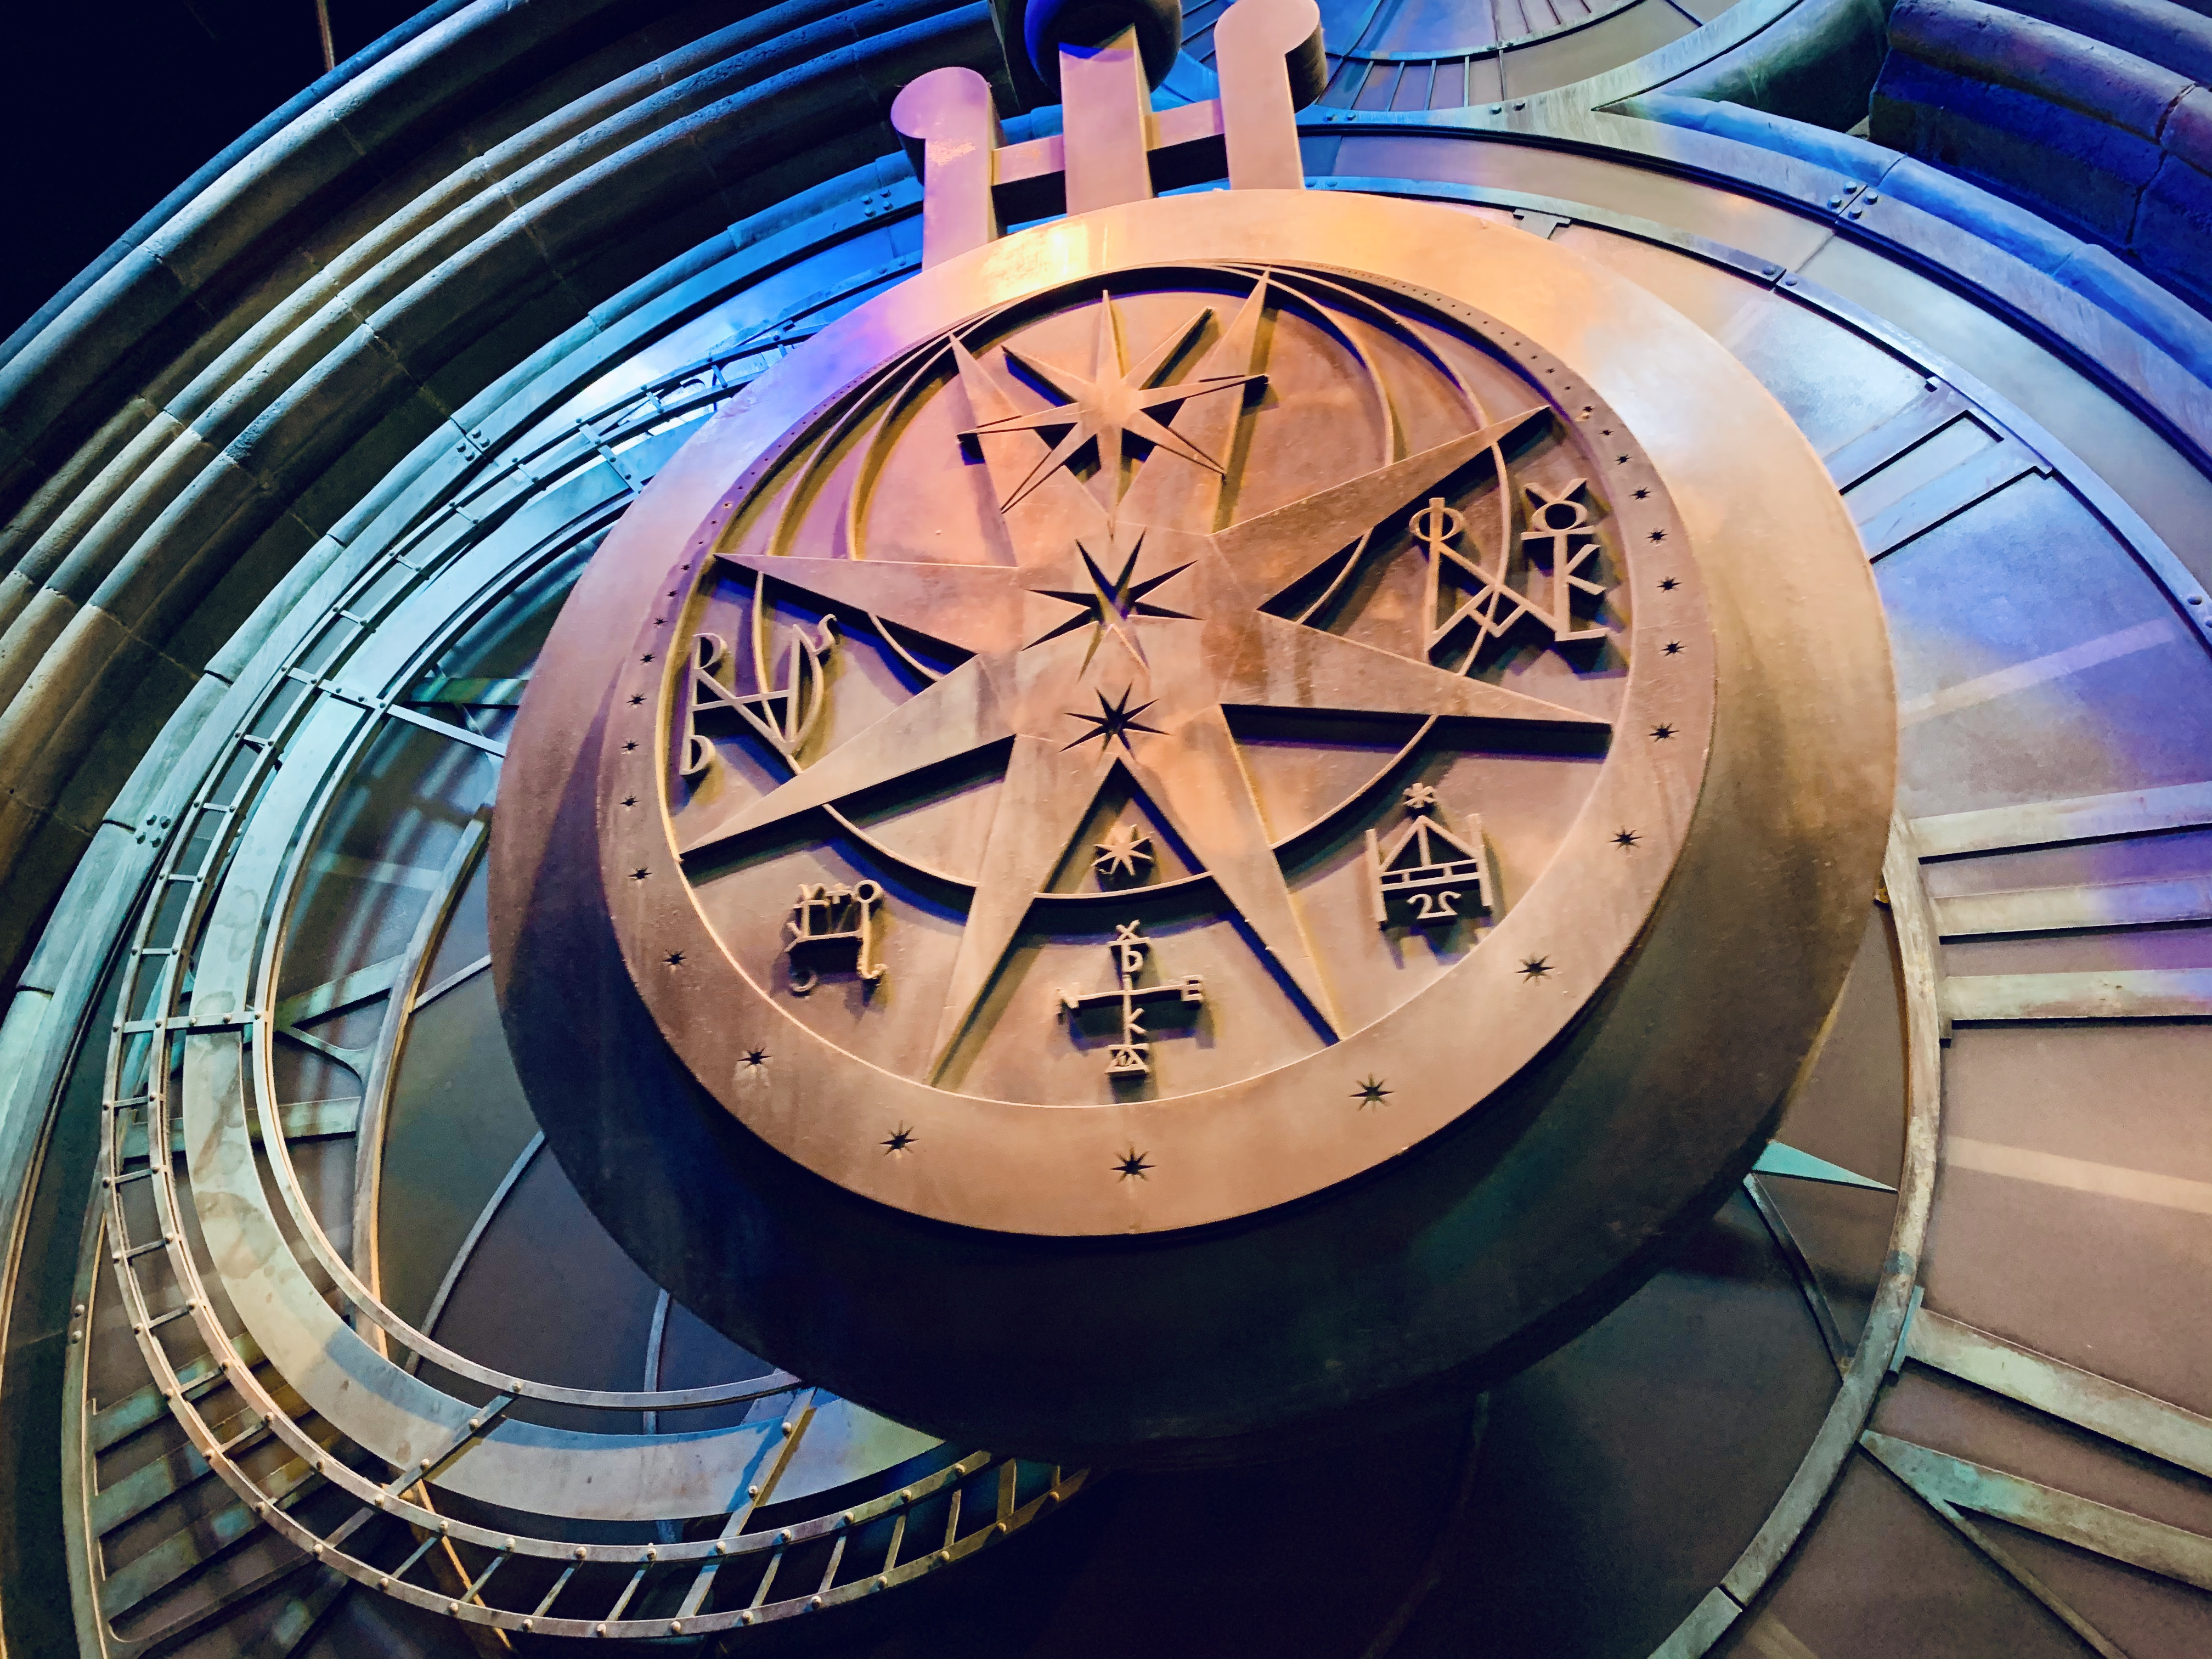 hogwarts ticking clock